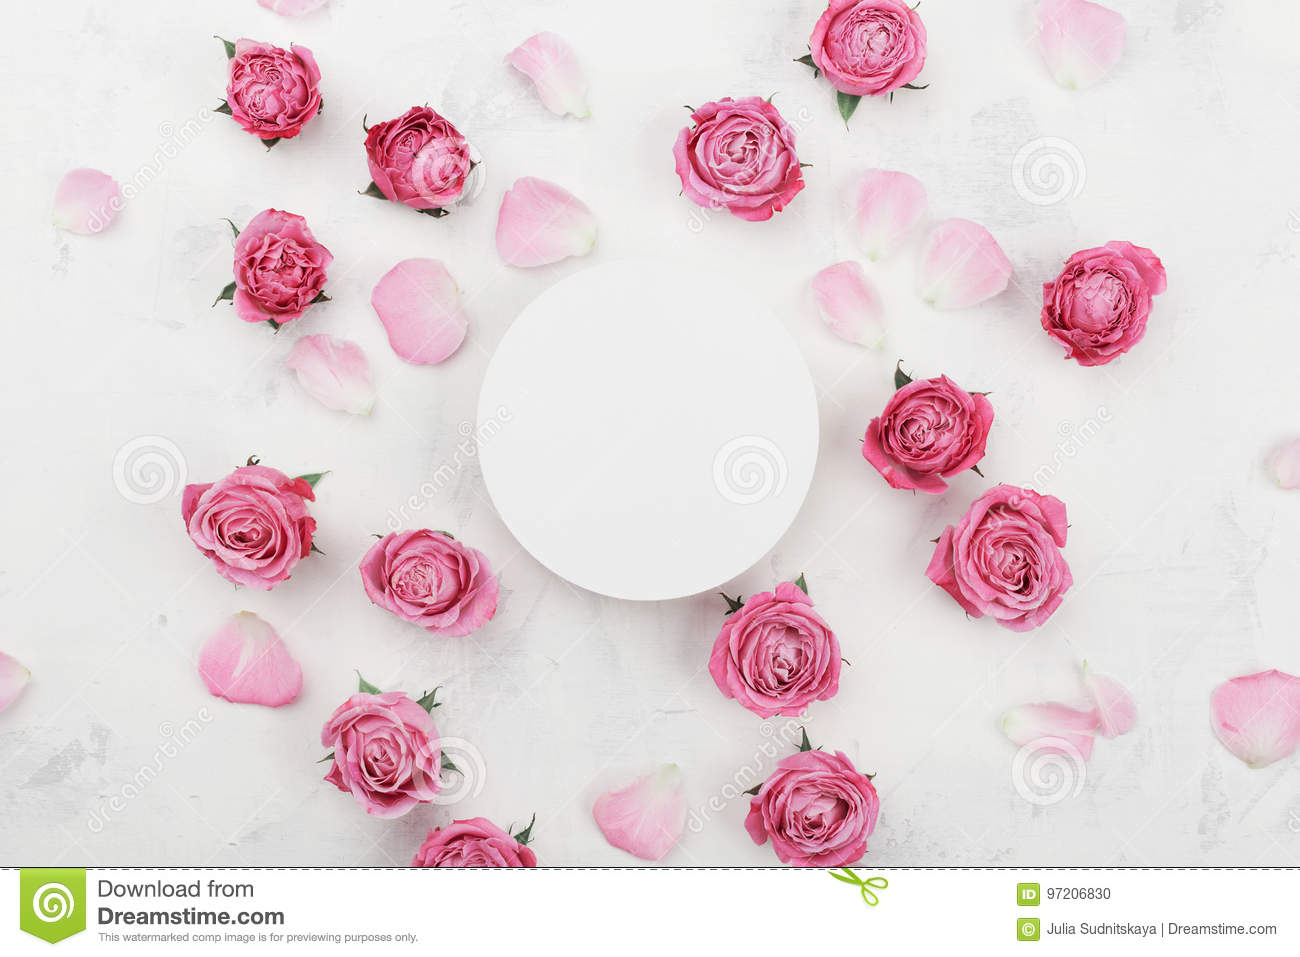 White round blank, pink rose flowers and petals for spa or wedding mockup on light background top view. Beautiful floral pattern.